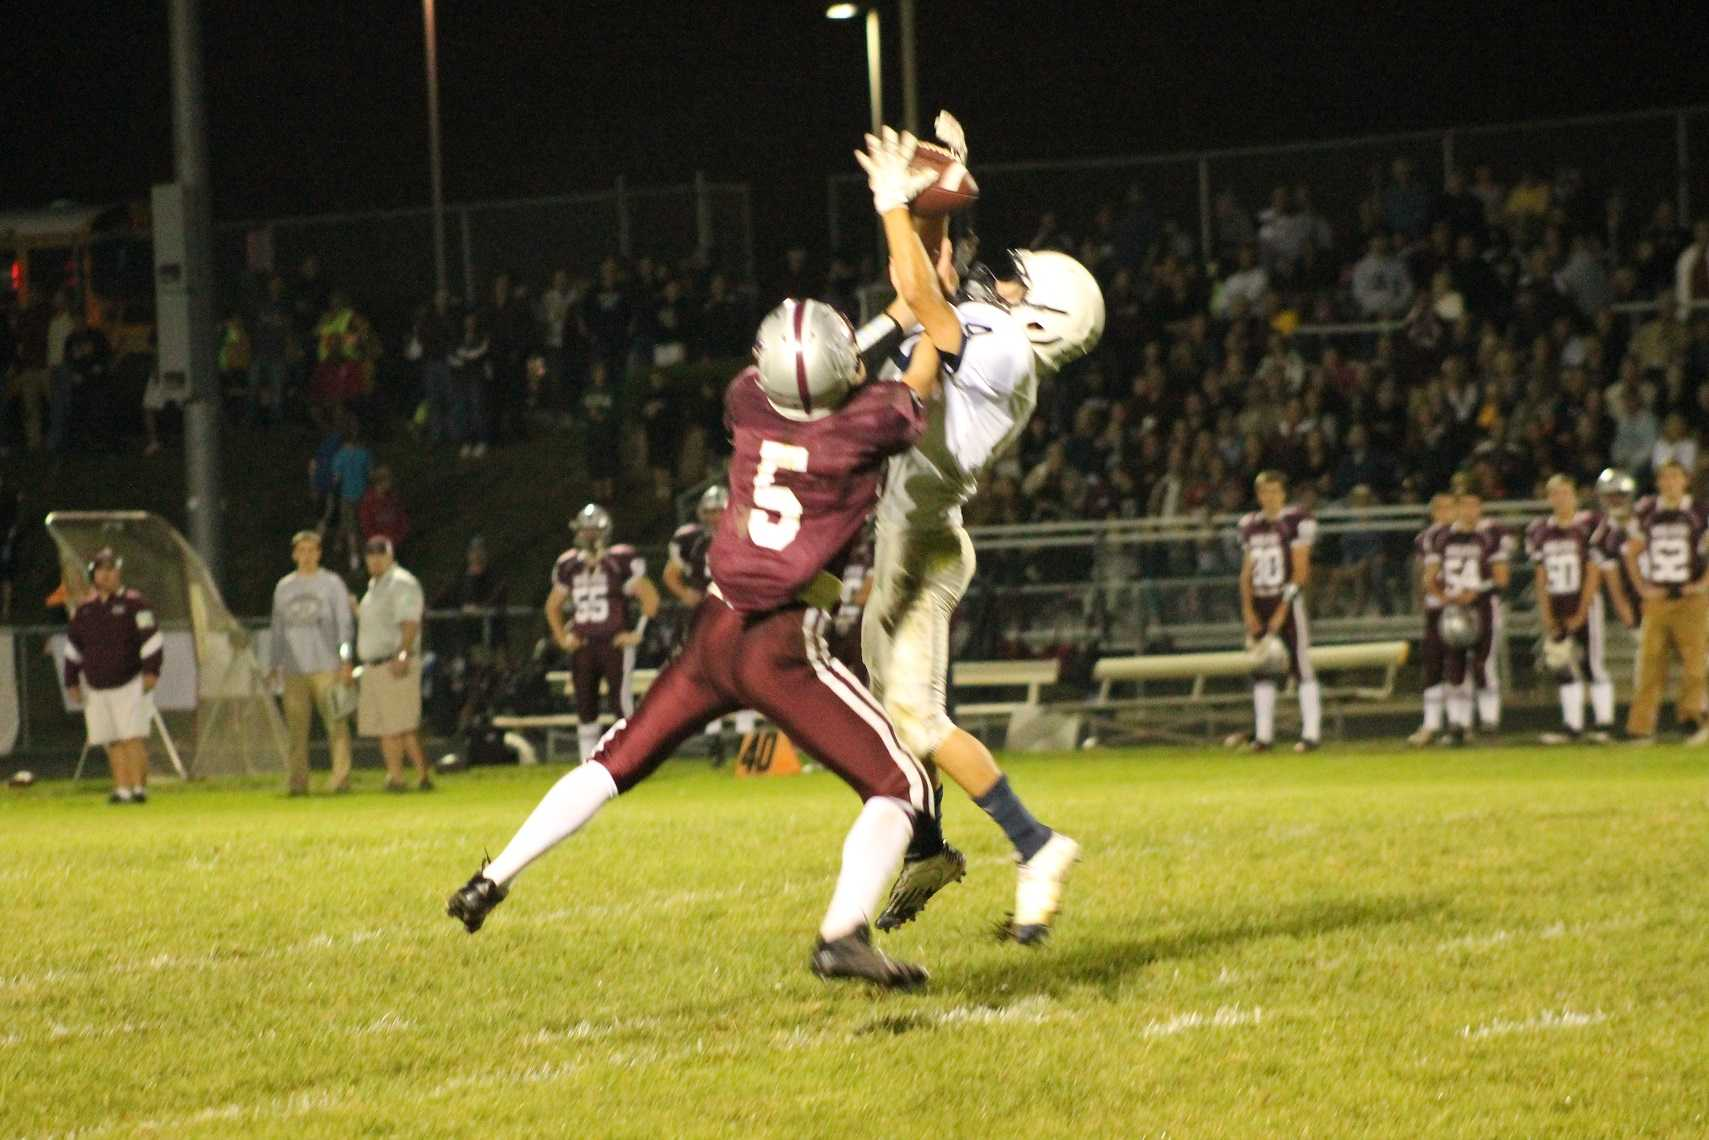 Hanselmann fights with a receiver to bring down the ball.